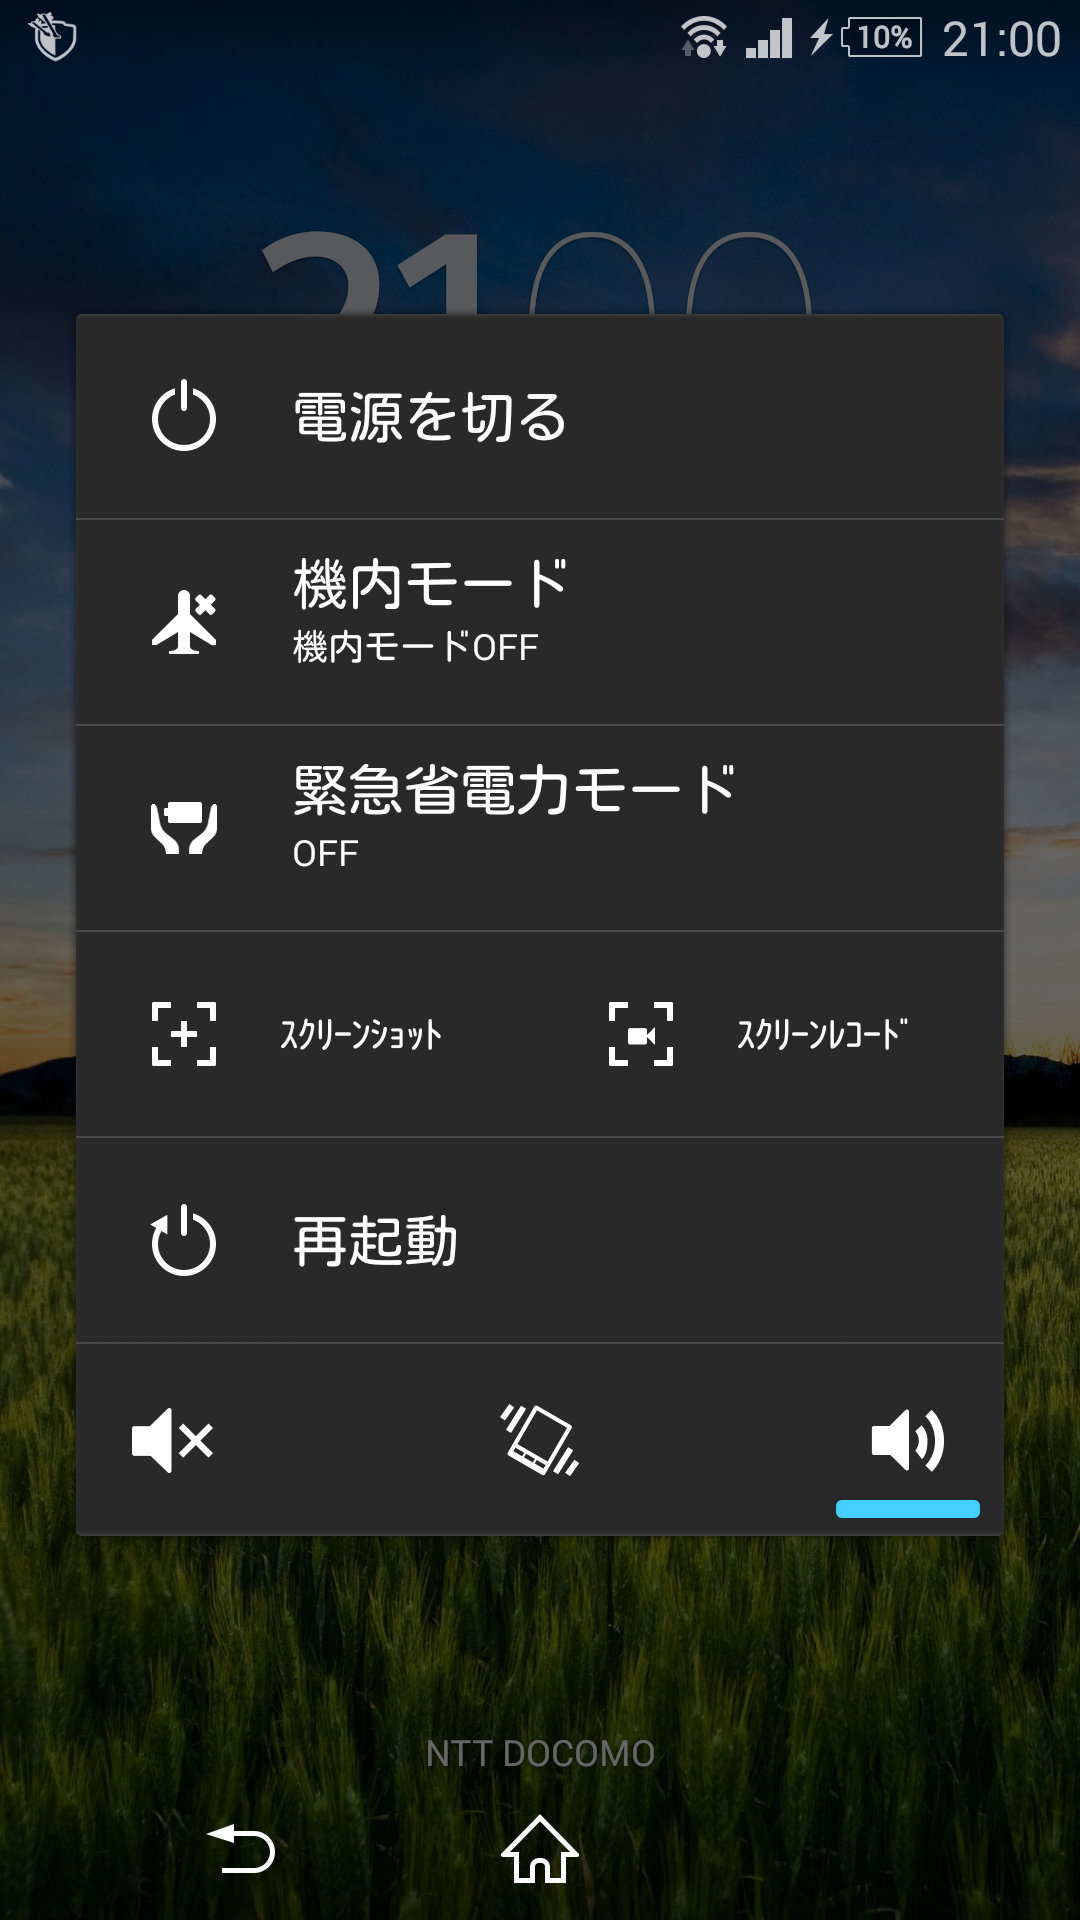 Screenshot_2014-12-21-21-00-12.png